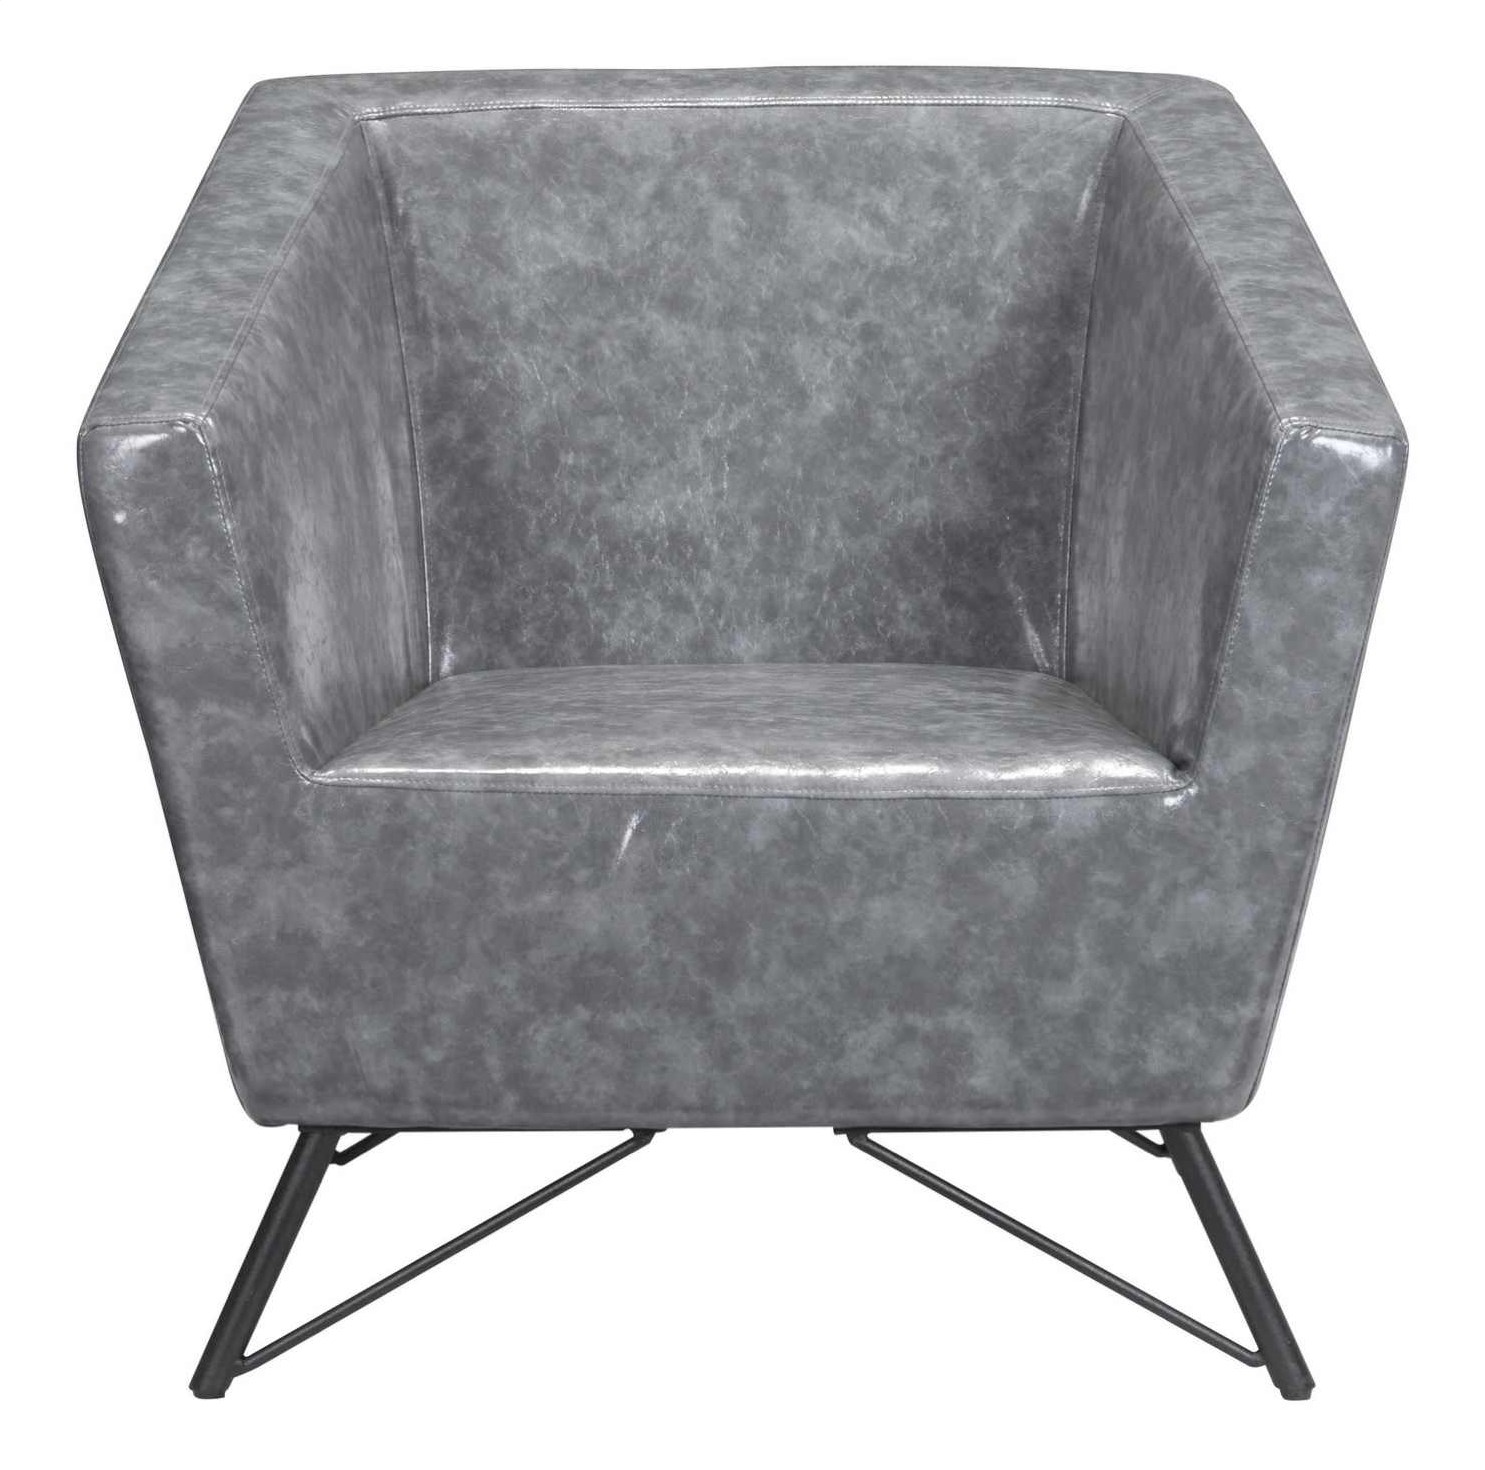 New weekly furniture deals sales today home decor for Furniture sales today